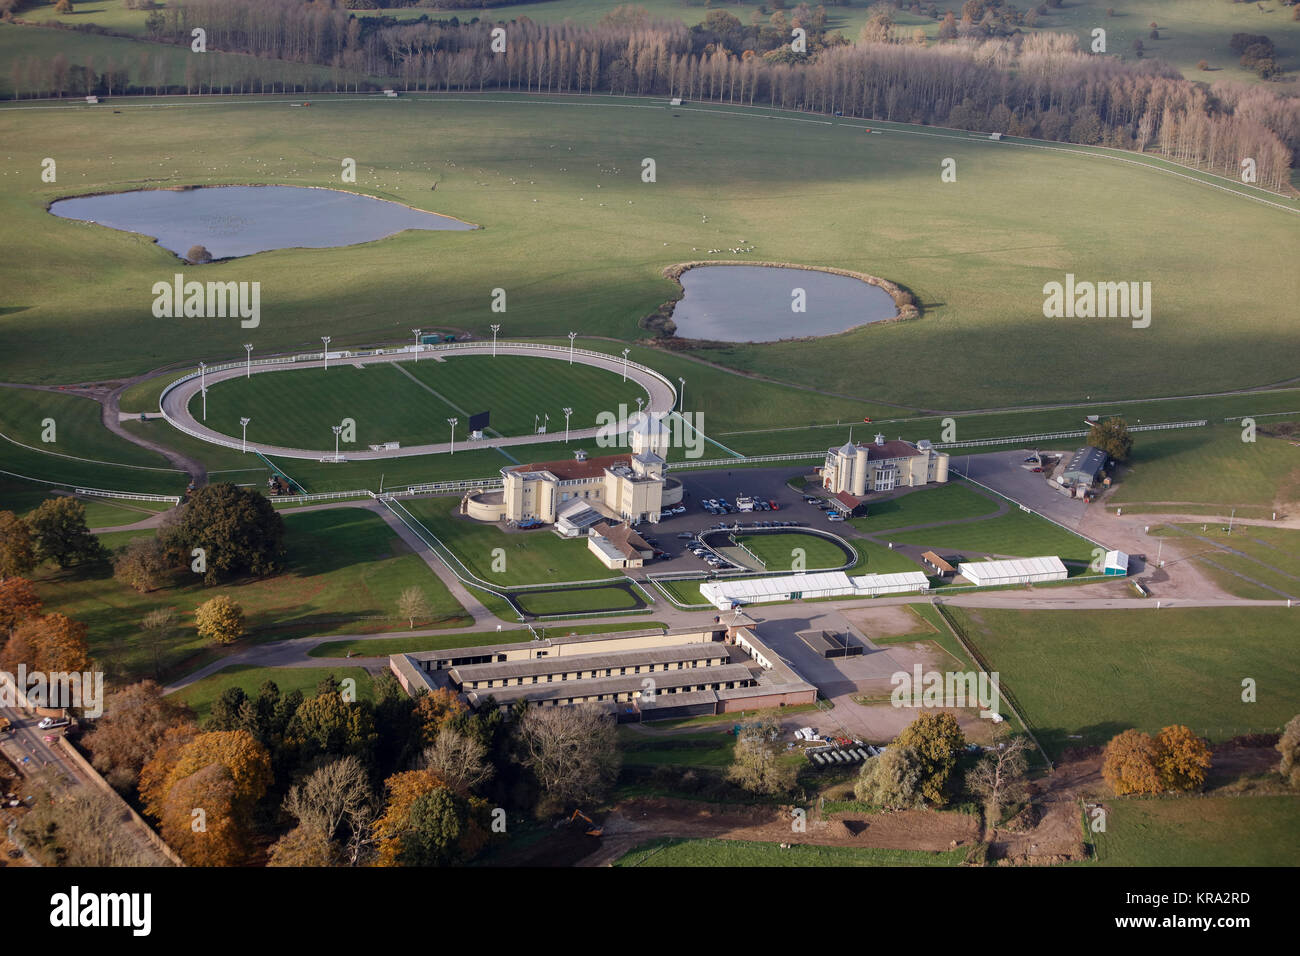 An aerial view of Towcester Racecourse, Northamptonshire - Stock Image